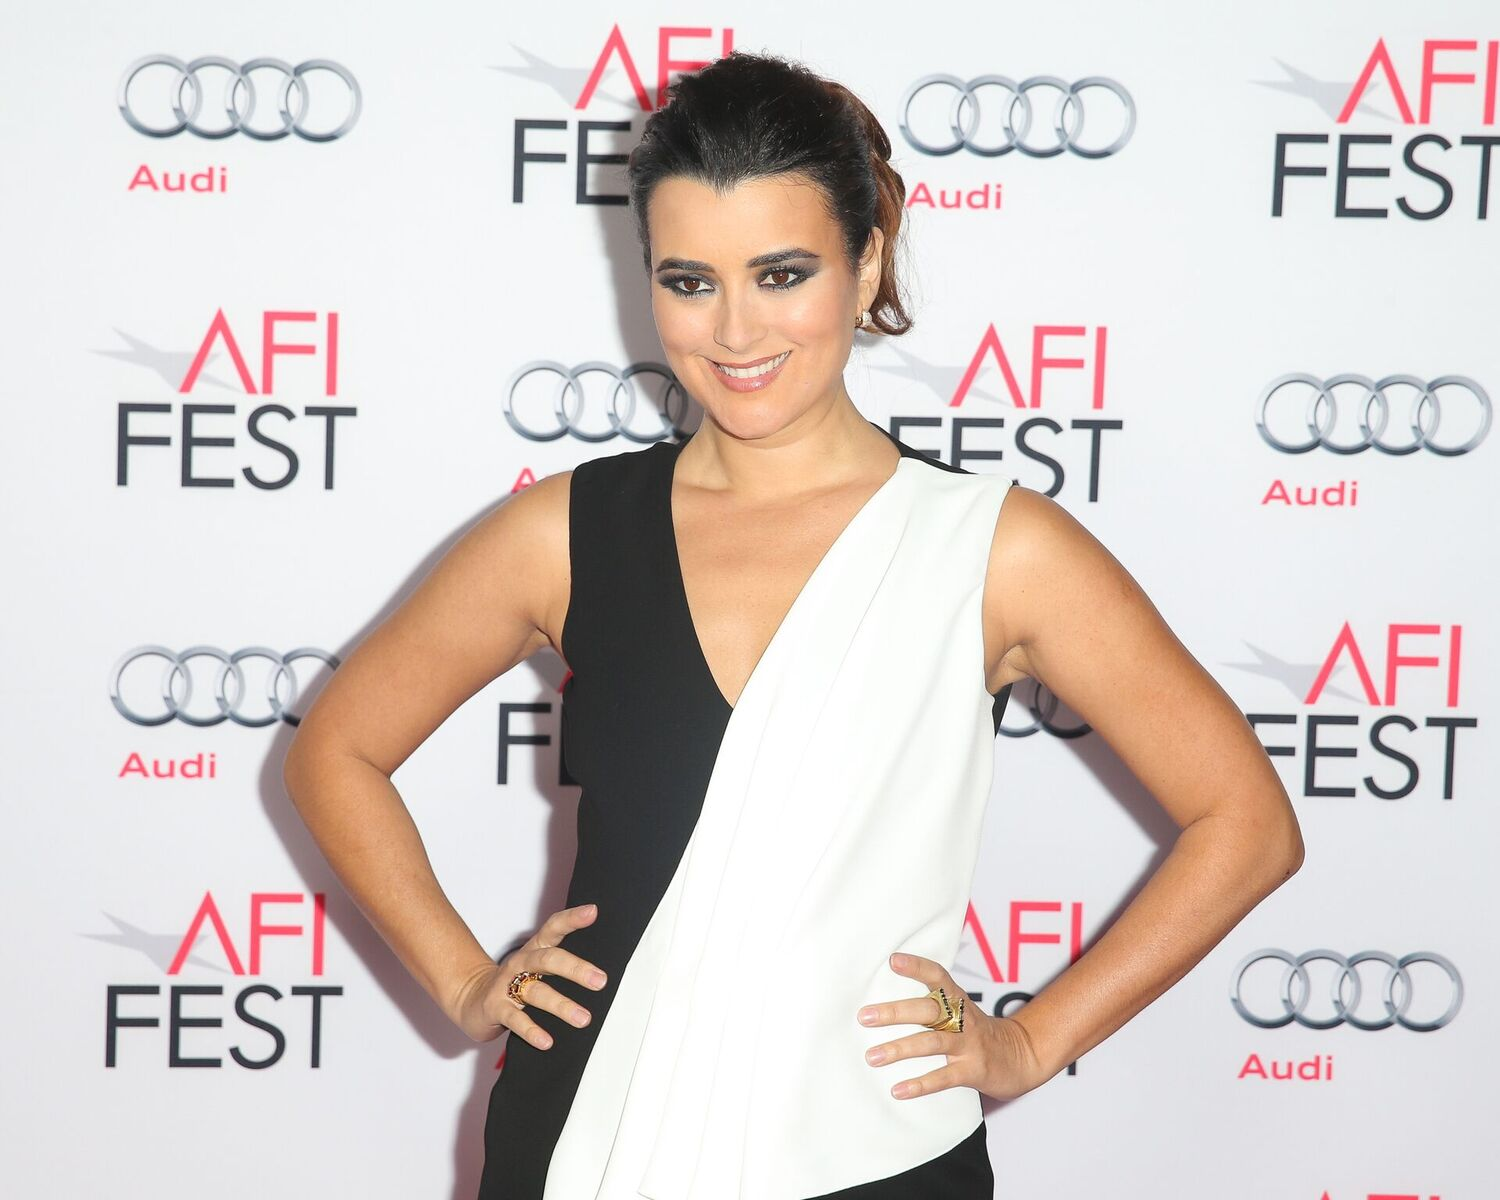 : Actress Cote de Pablo attends the Centerpiece Gala premiere of Alcon Entertainment's 'The 33' at TCL Chinese Theatre on November 9, 2015 in Hollywood, California | Photo: Getty Images